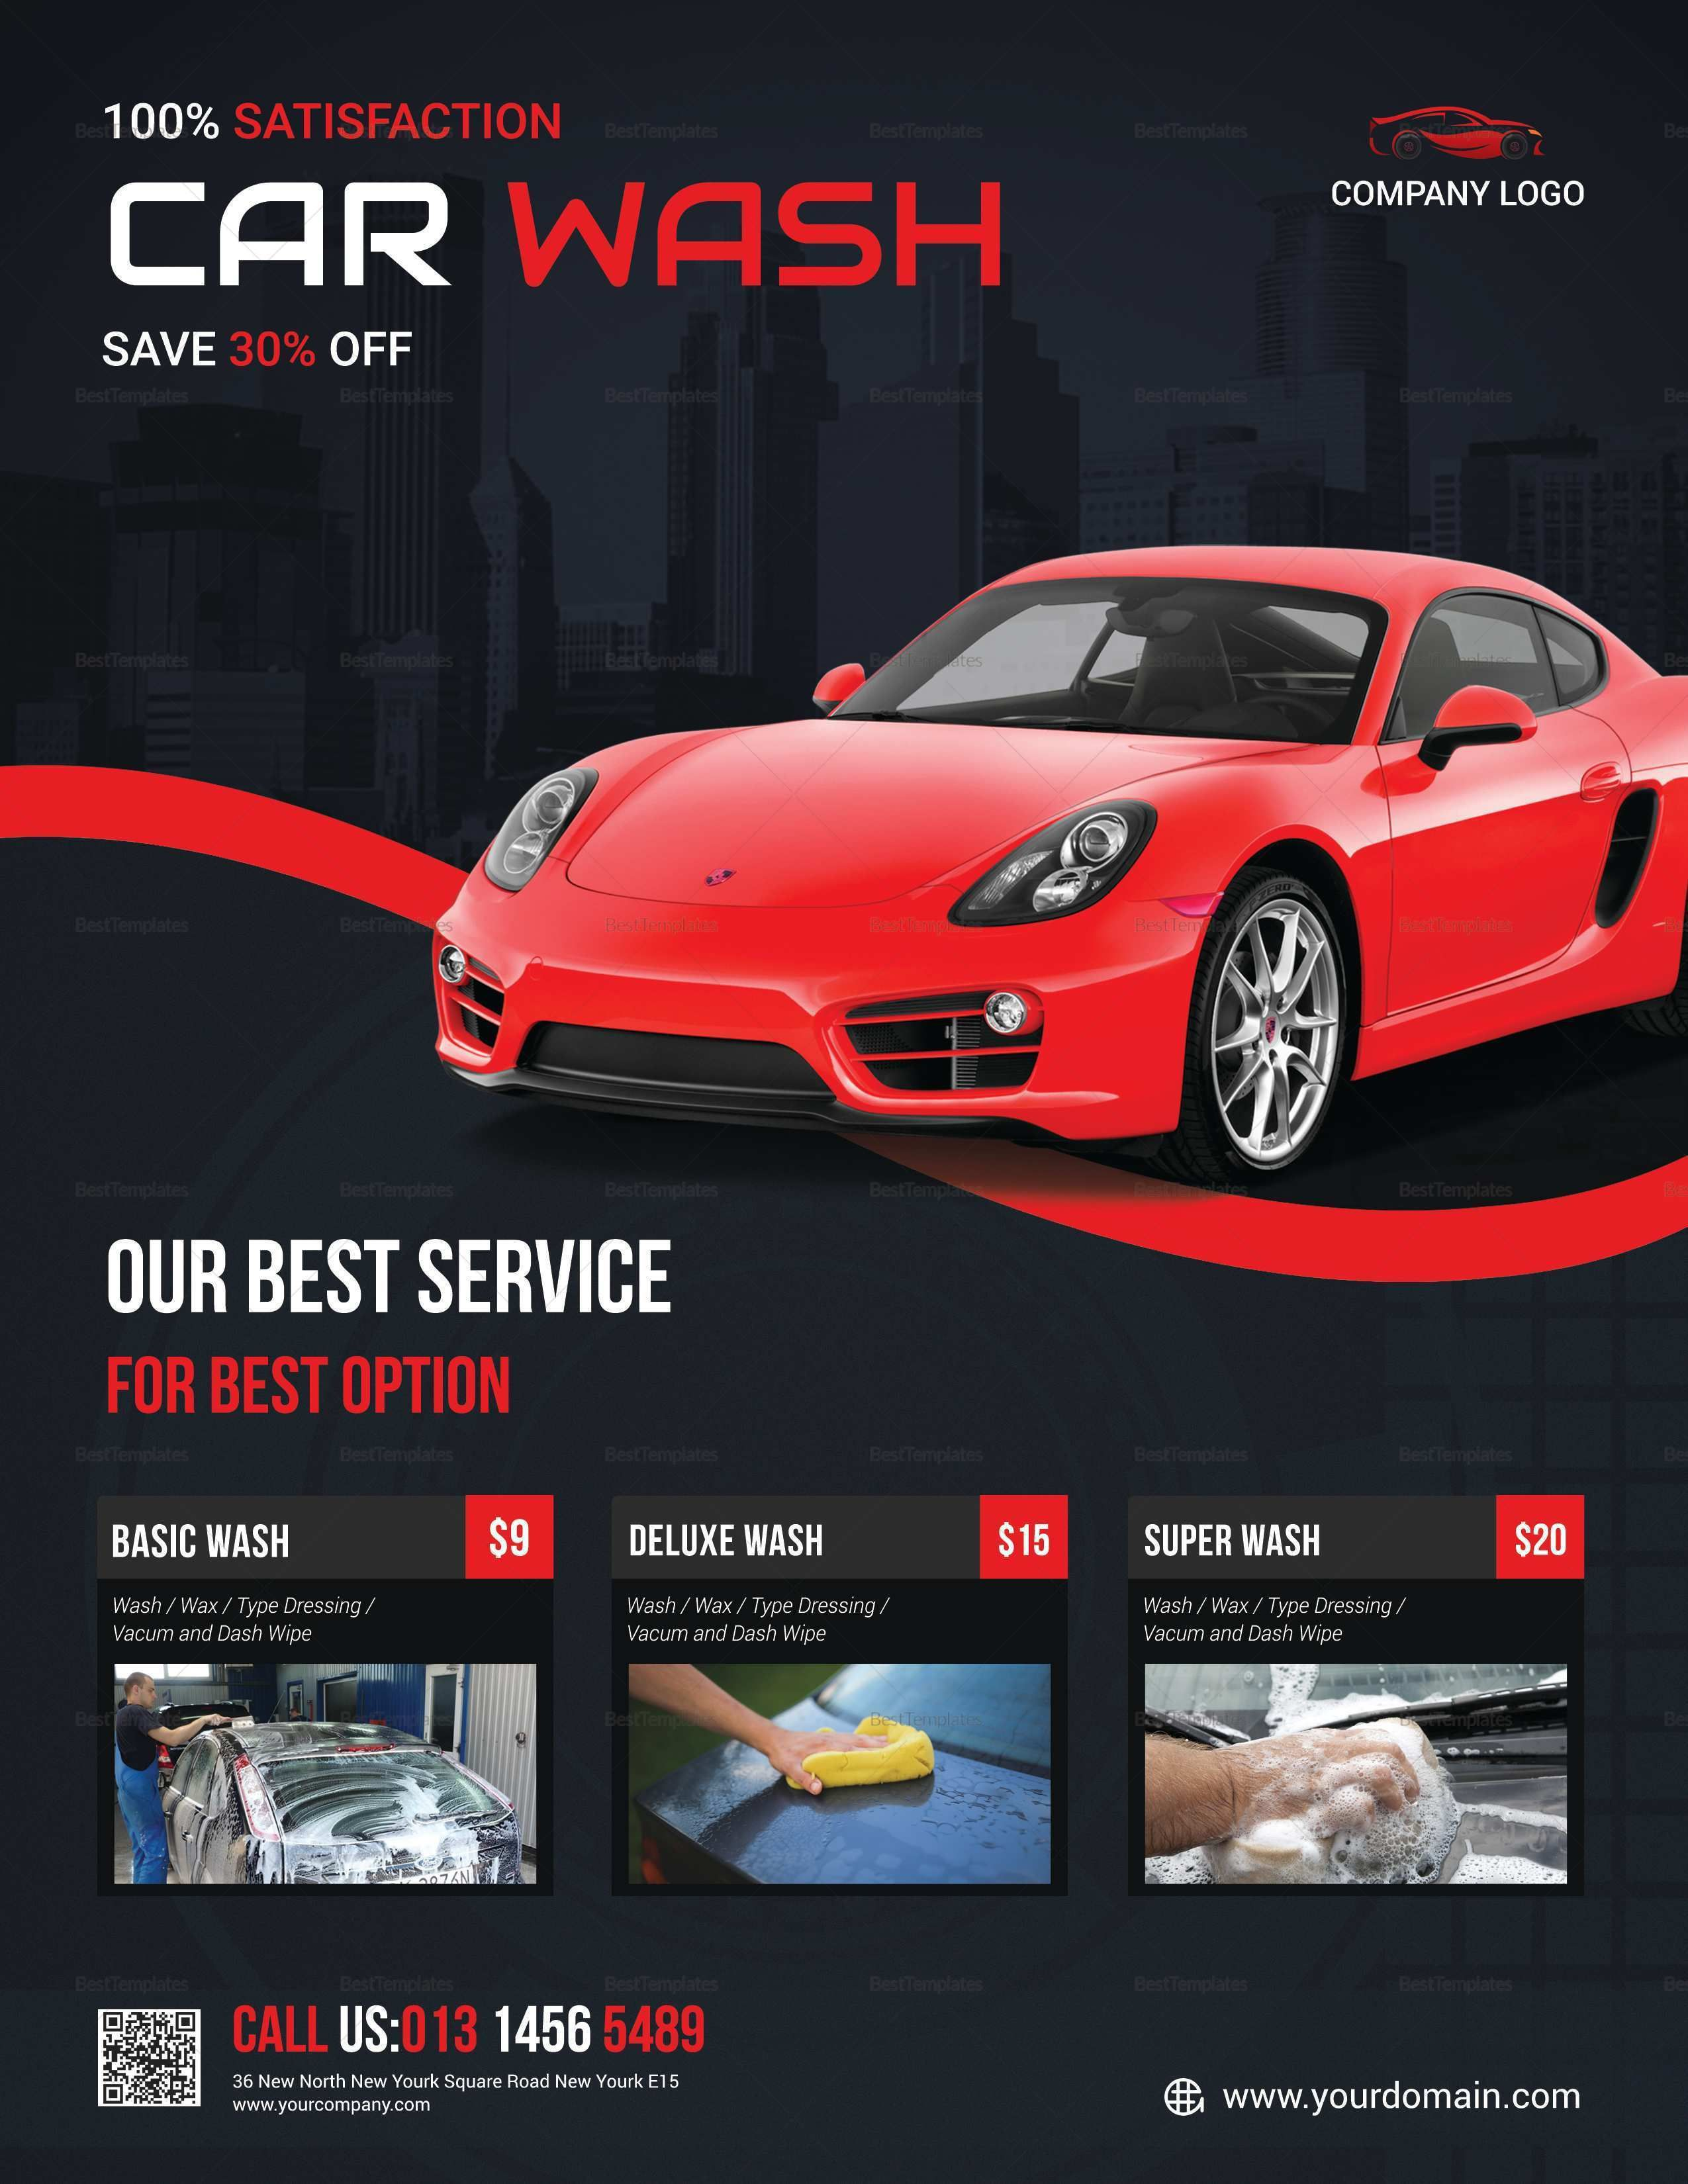 002 Archaicawful Car Wash Flyer Template Example  Free Fundraiser DownloadFull